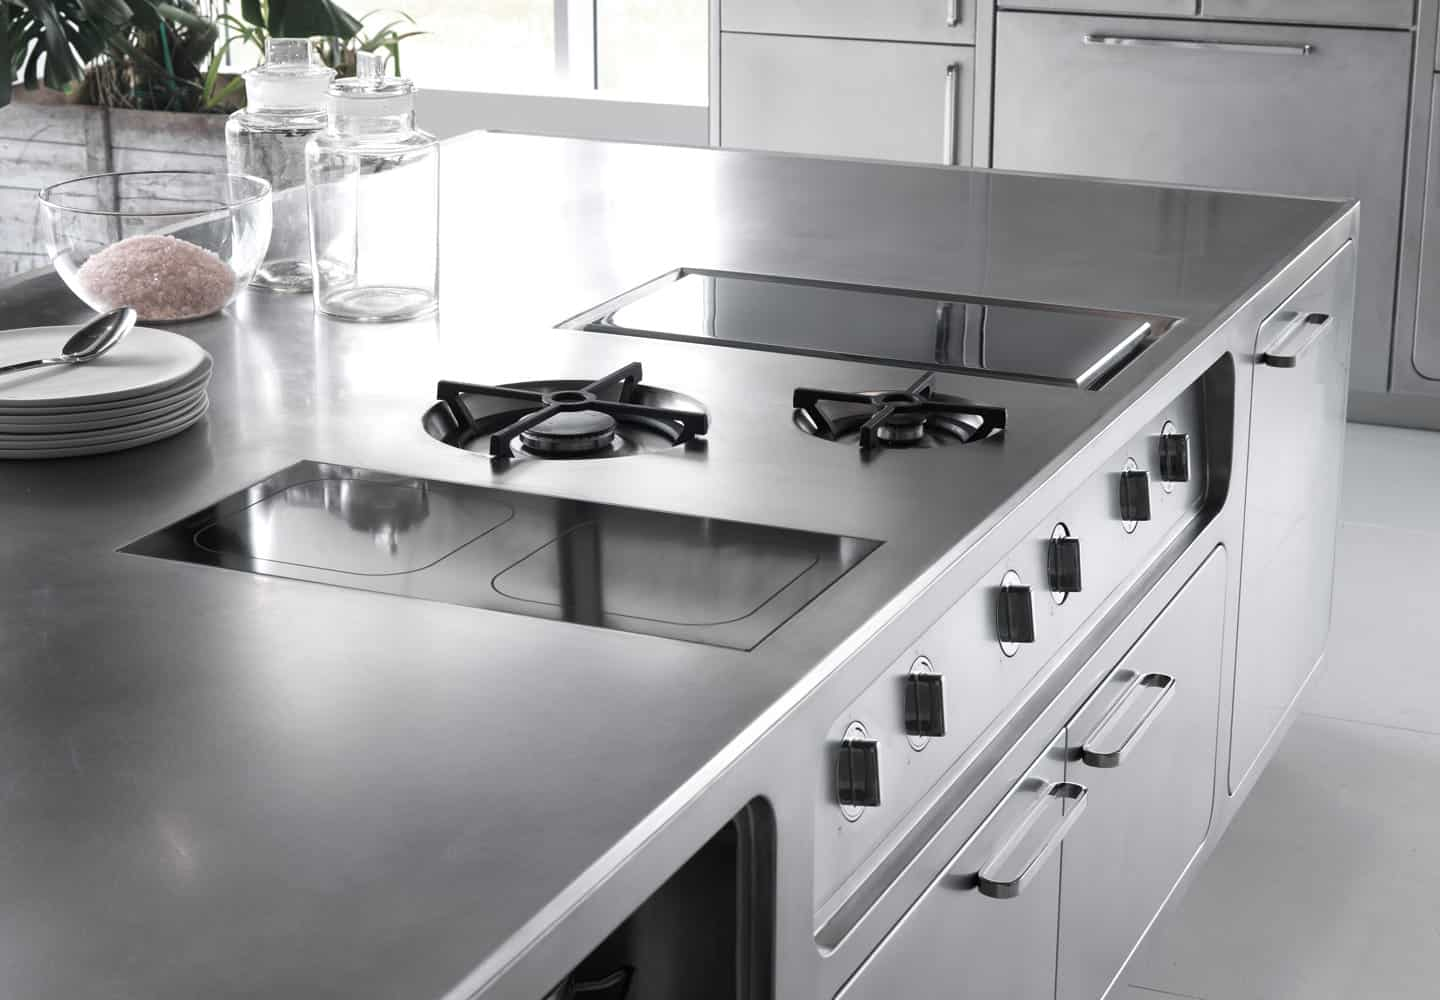 Cook like a Pro with Abimis Stainless Steel Kitchen